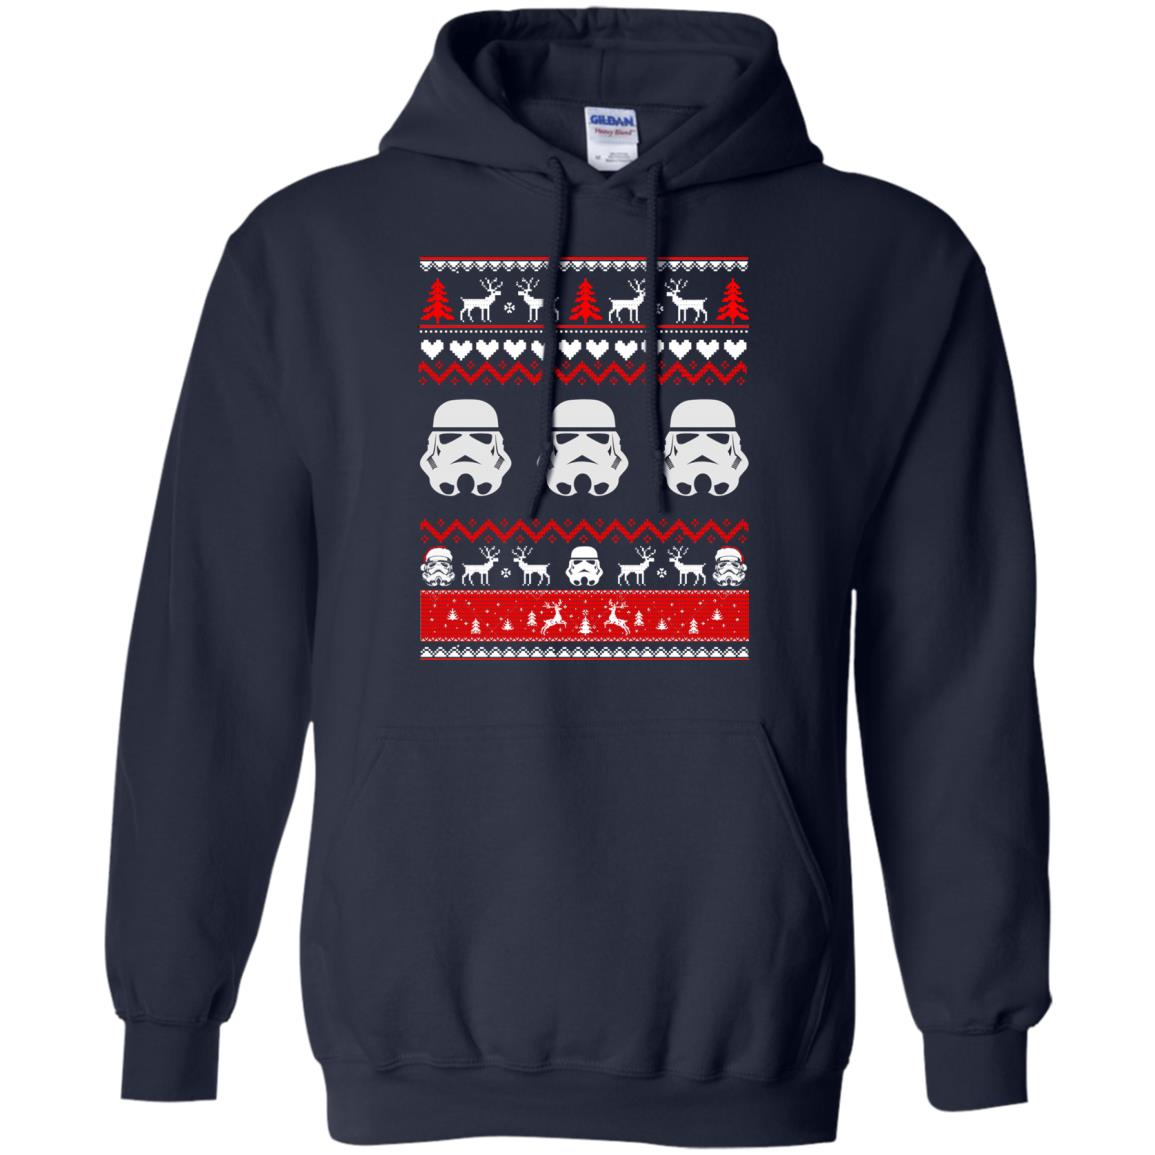 image 1727 - Stormtrooper Star Wars Ugly Christmas Sweatshirt, Shirt